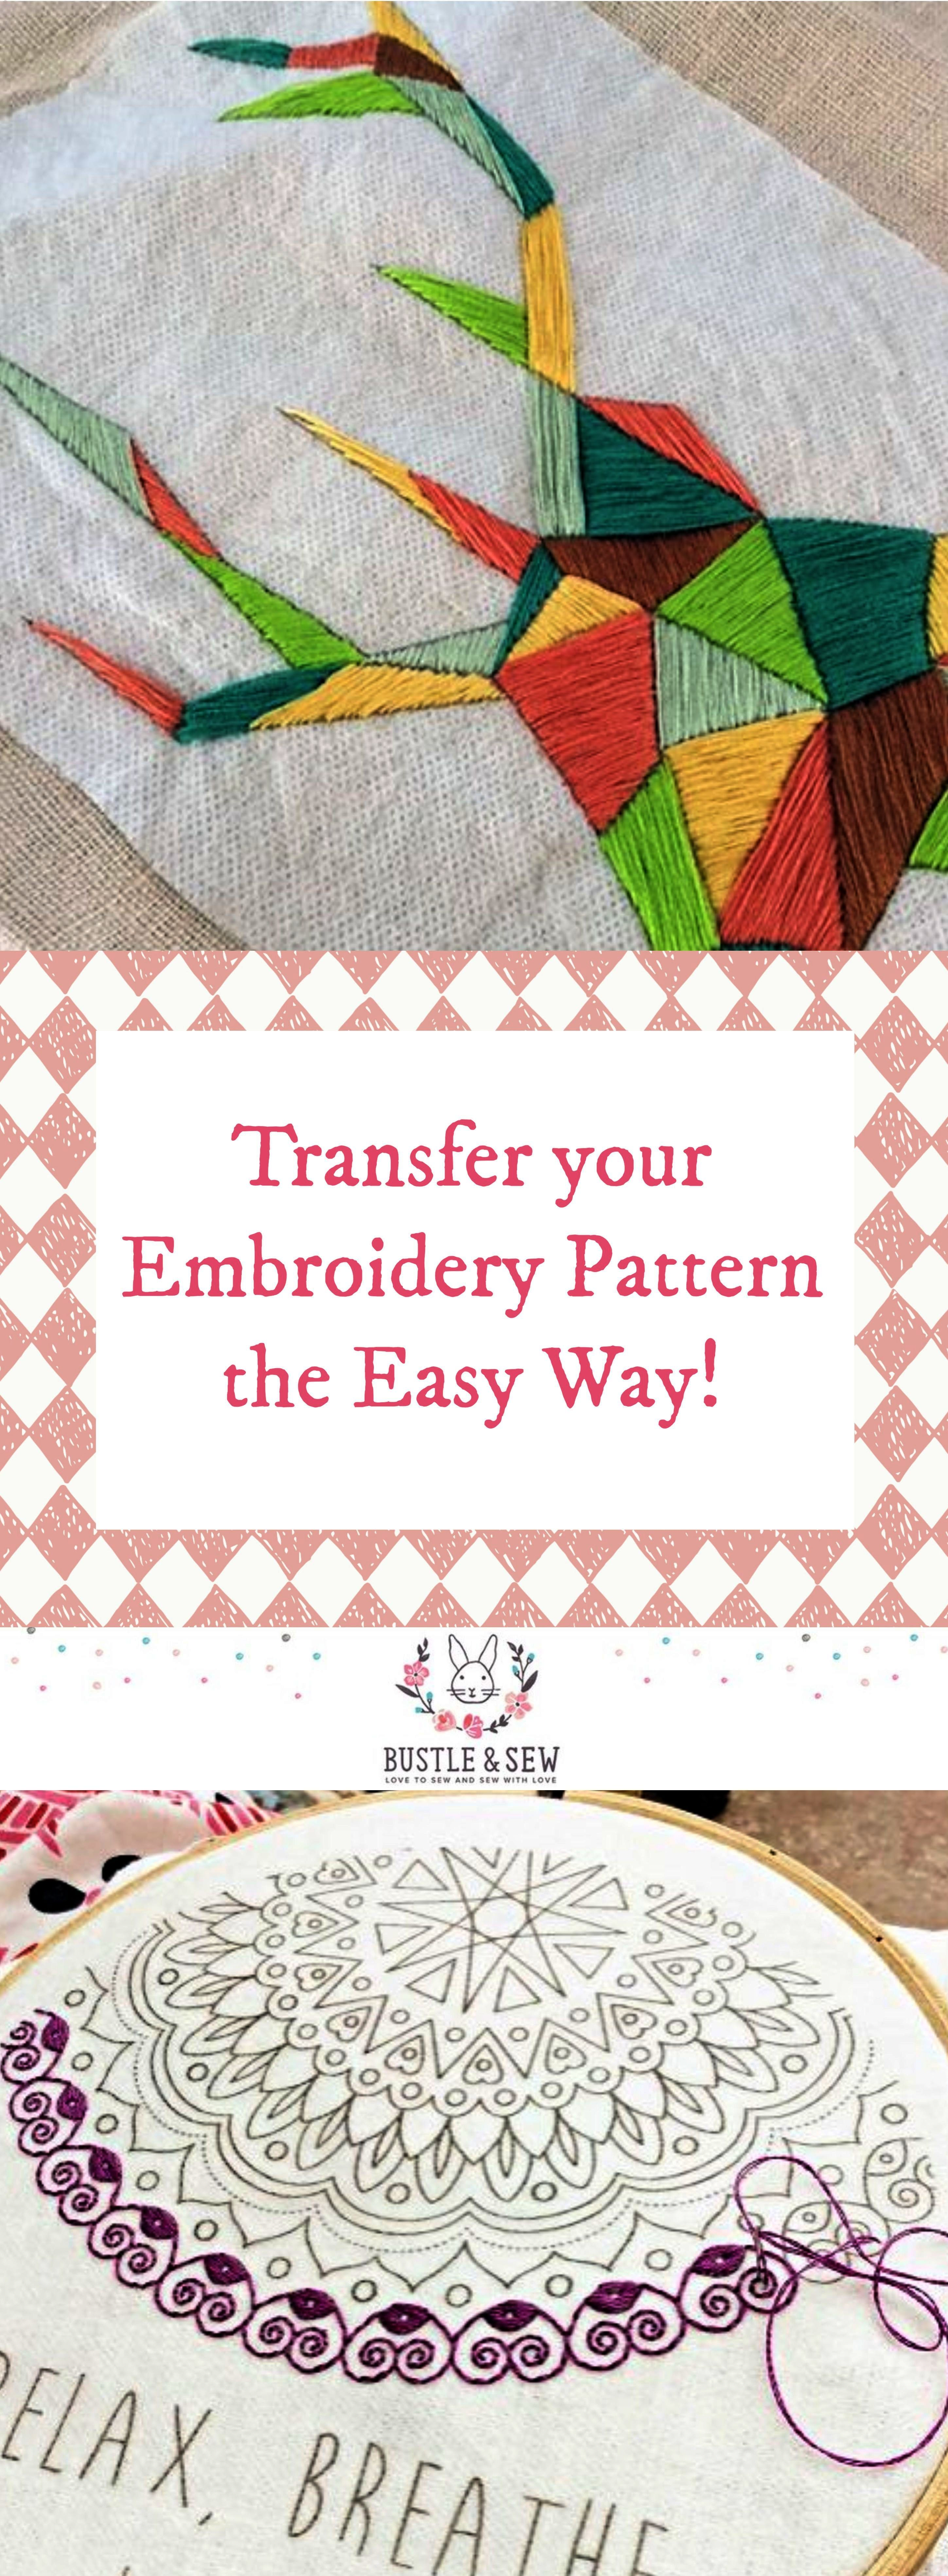 Hand Embroidery Tutorial In Tamil Hand Embroidery Patterns For Jeans